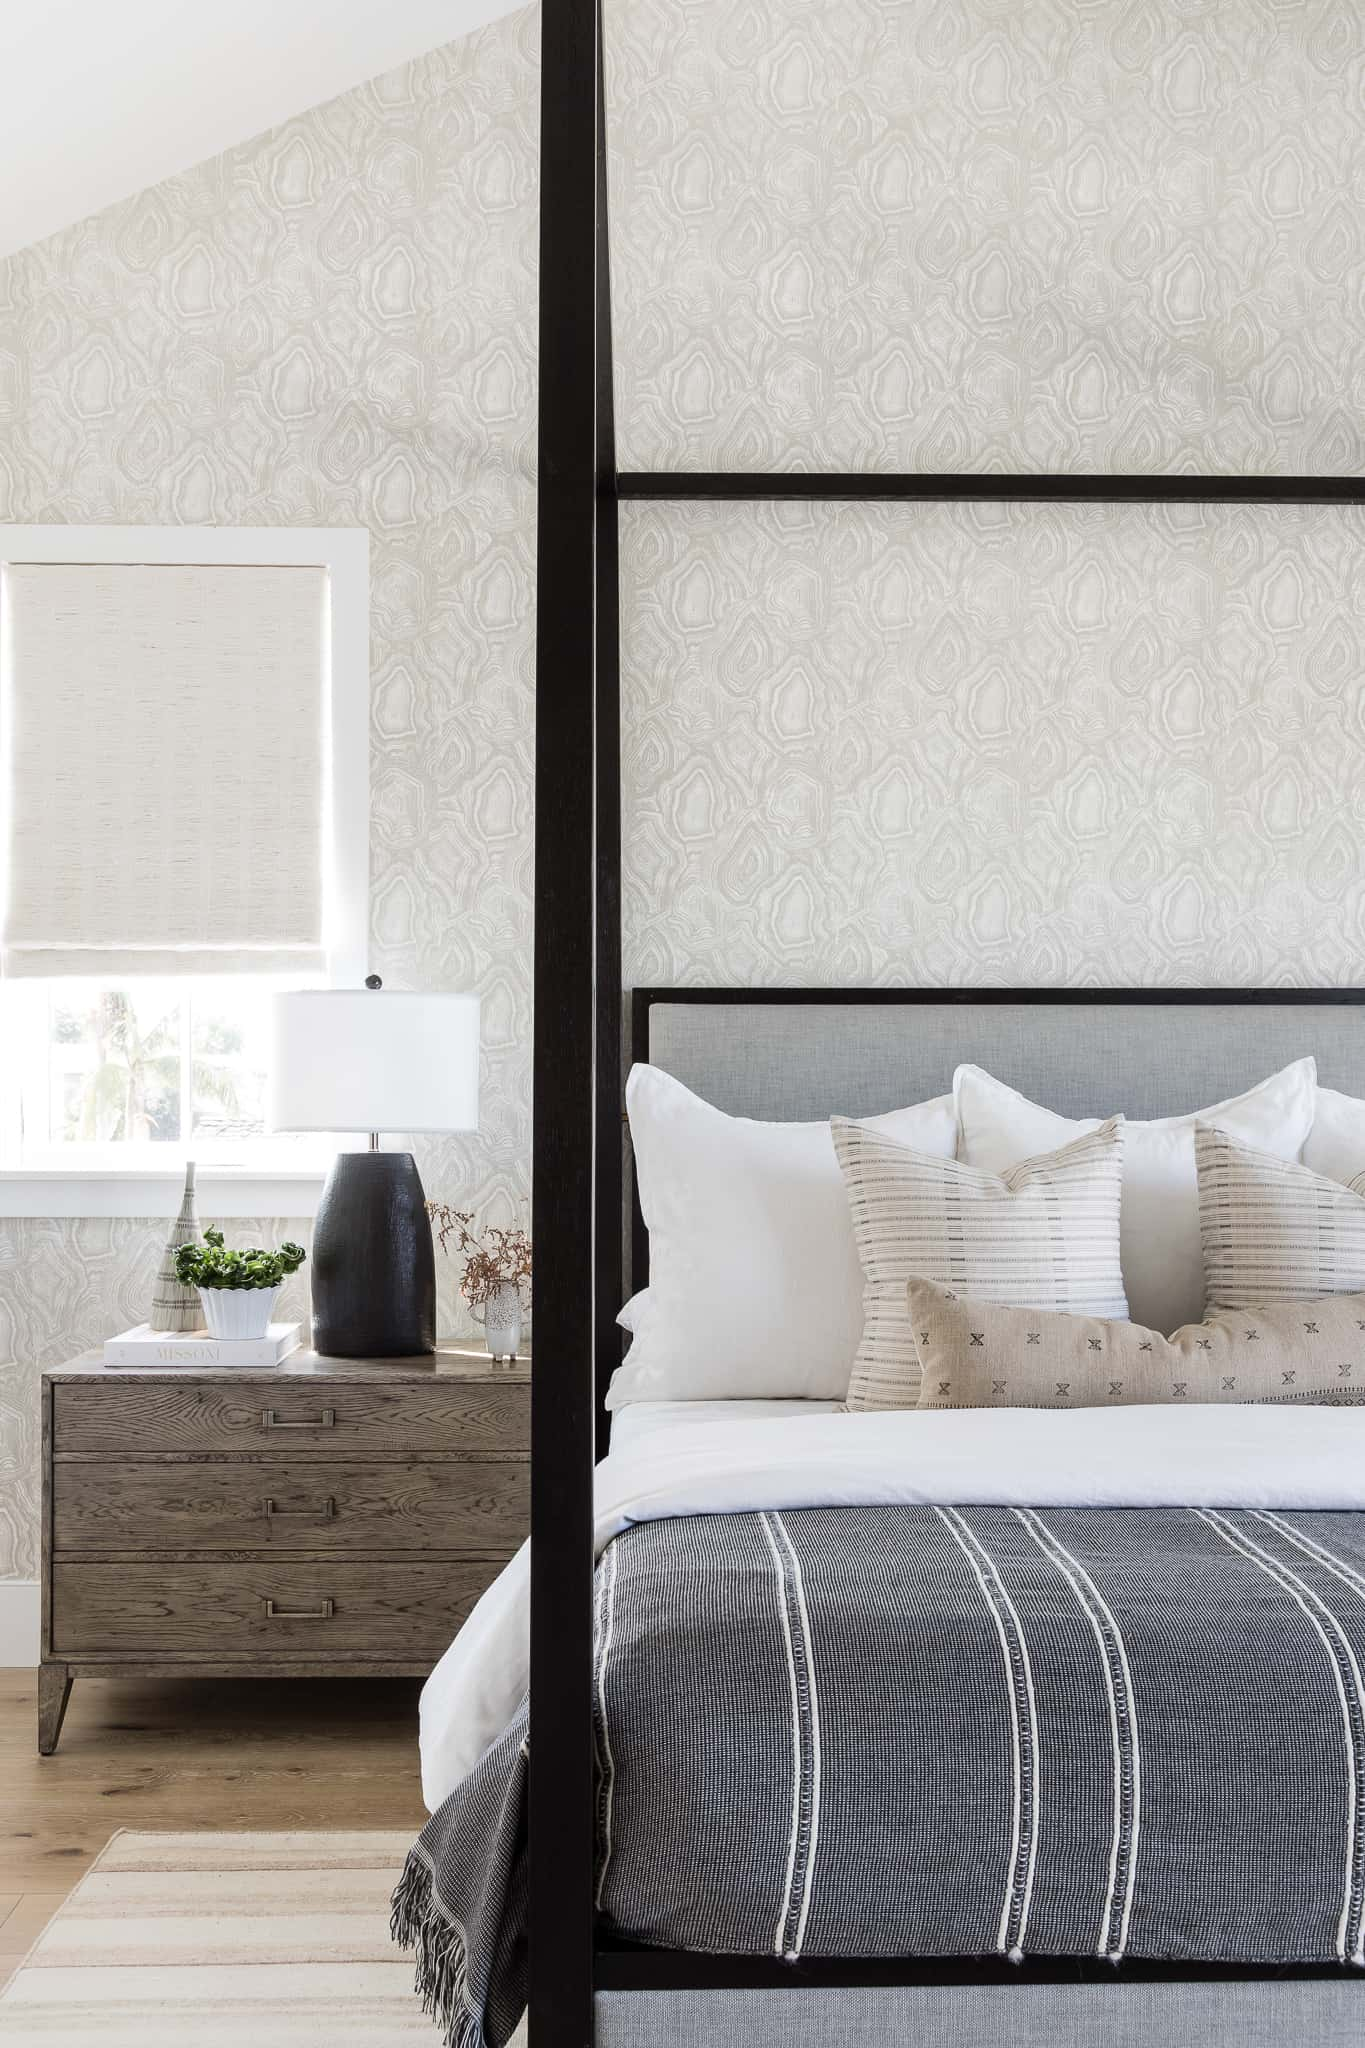 How To Properly Make A Bed - Windward Project Image - Mindy Gayer Design Co.